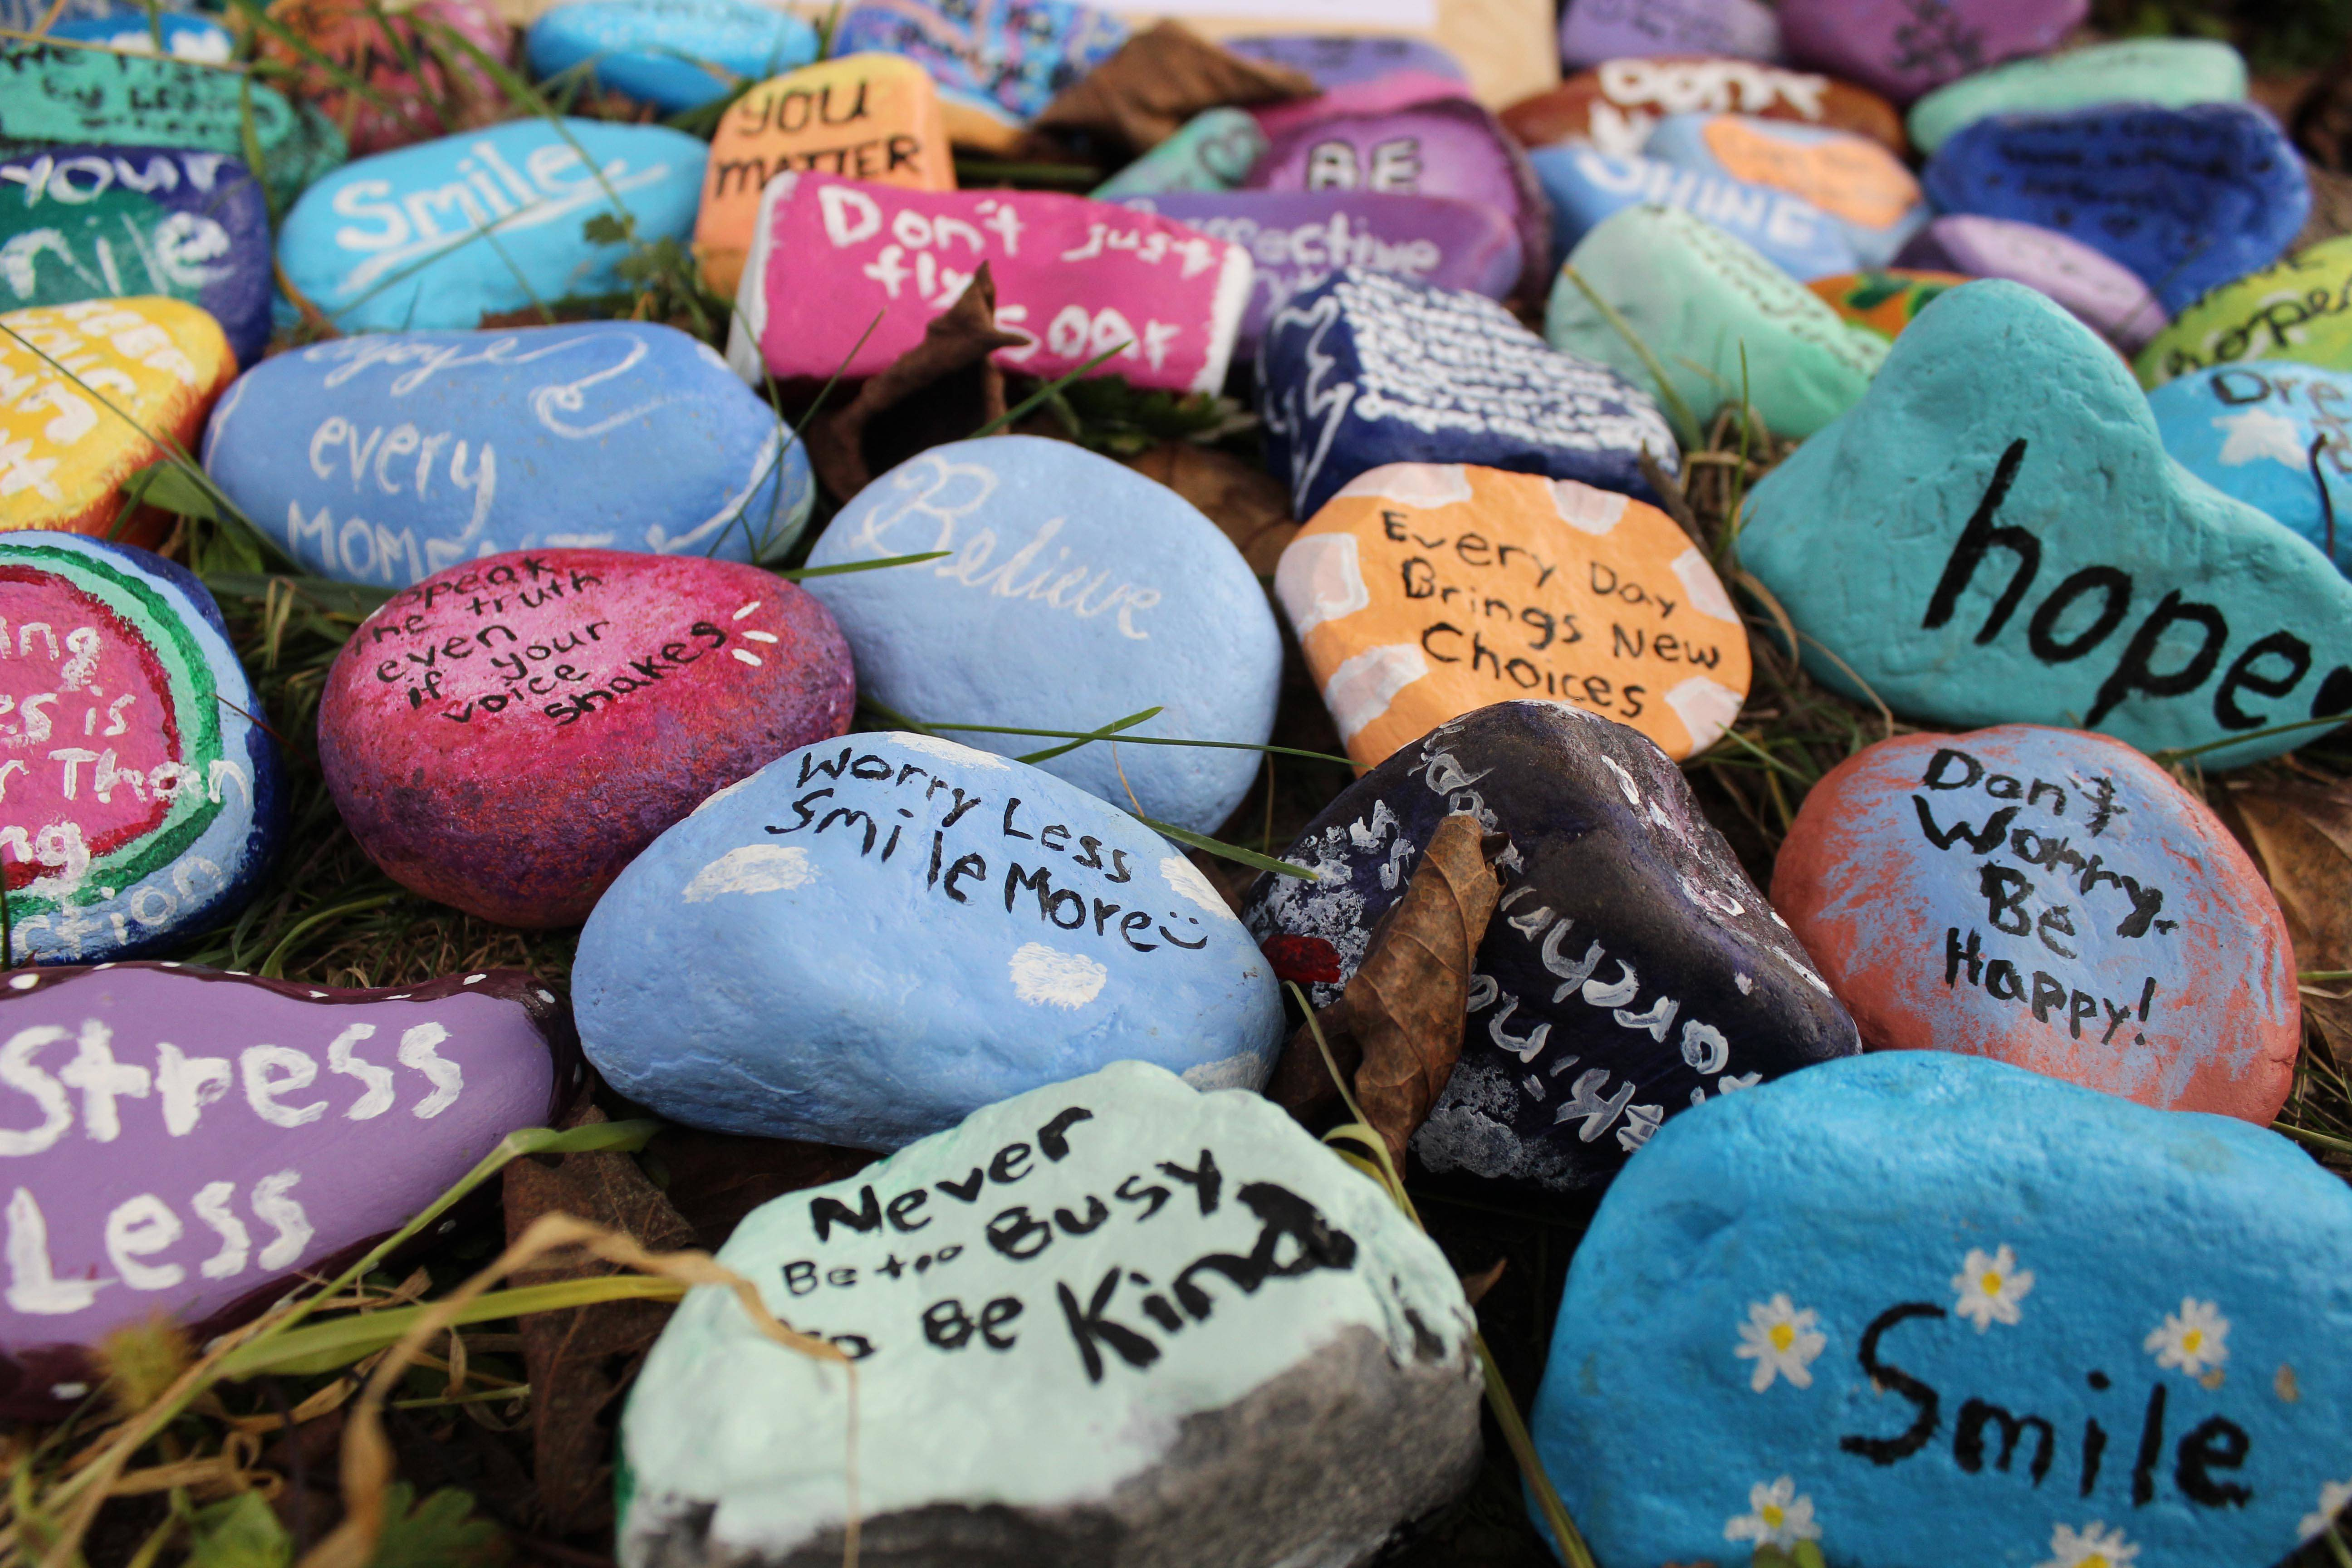 Discussion on this topic: How to Make Kindness Rocks, how-to-make-kindness-rocks/